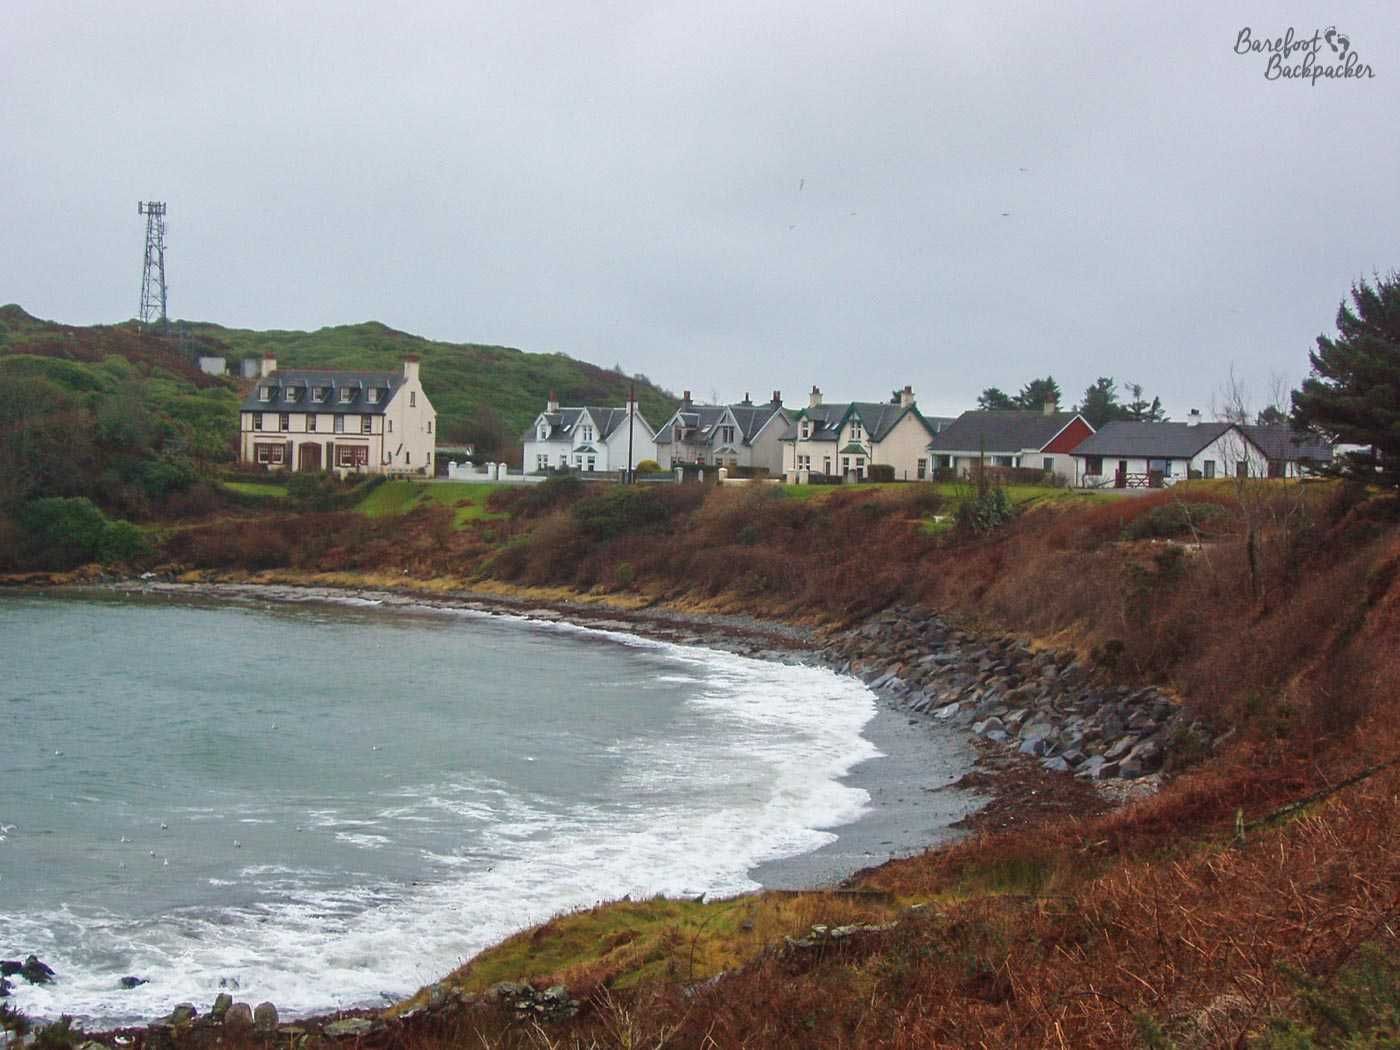 Sweeping bay comes to an end at the bottom of a short but steep rocky/grassy bank. No beach. Beyond the bank lie a row of white and beige houses. The hills continue to climb behind and away from the cottages. It is a grey, cold, windy, day.